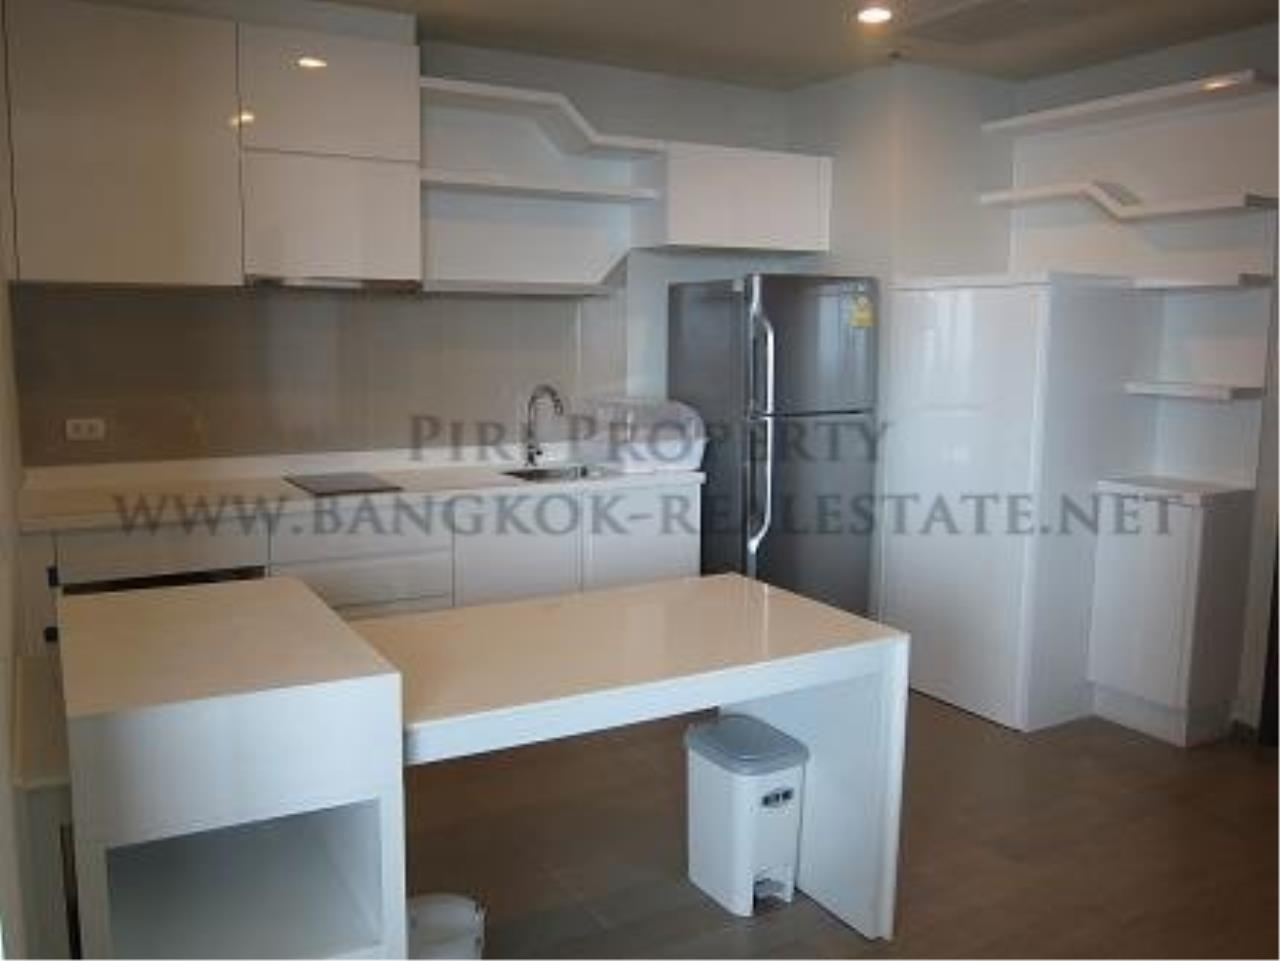 Piri Property Agency's Pyne by Sansiri Condo for Rent - 2 Bedroom on High Floor 4